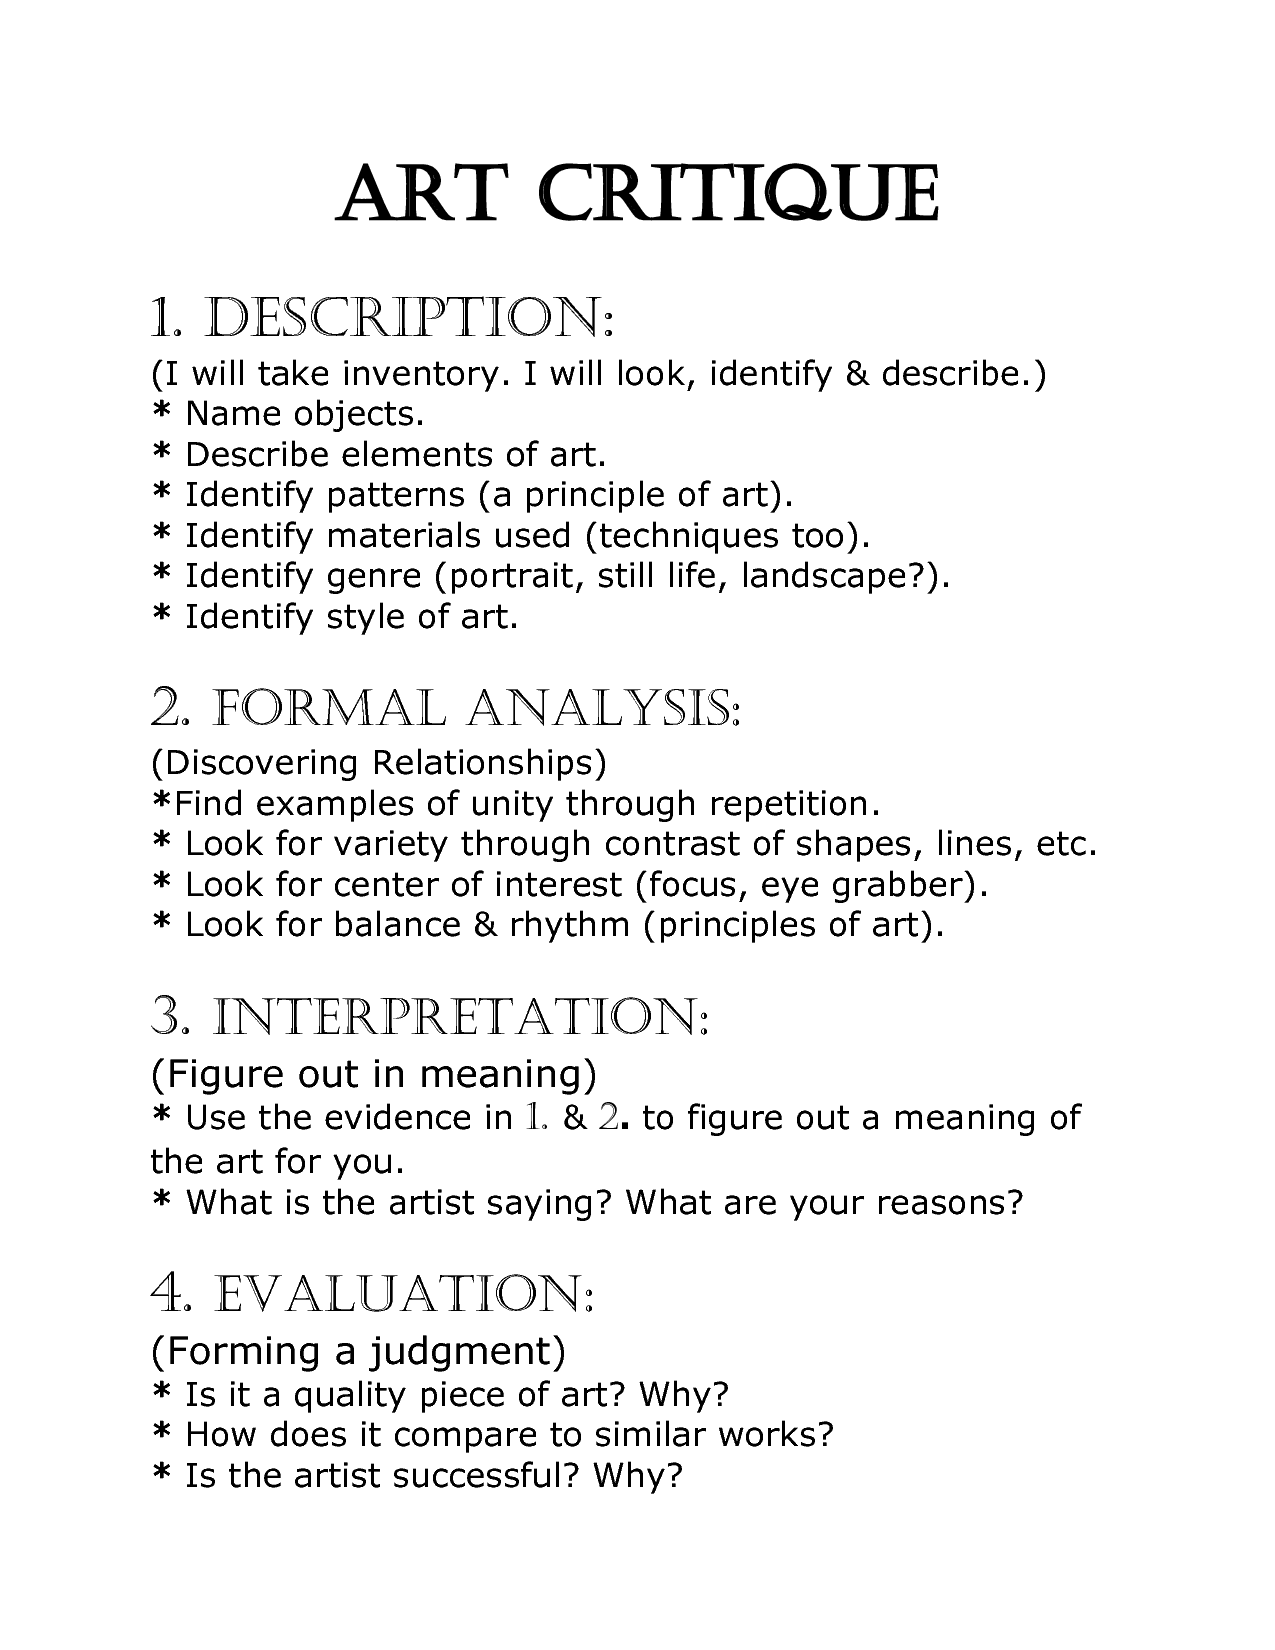 Art criticism instructions.